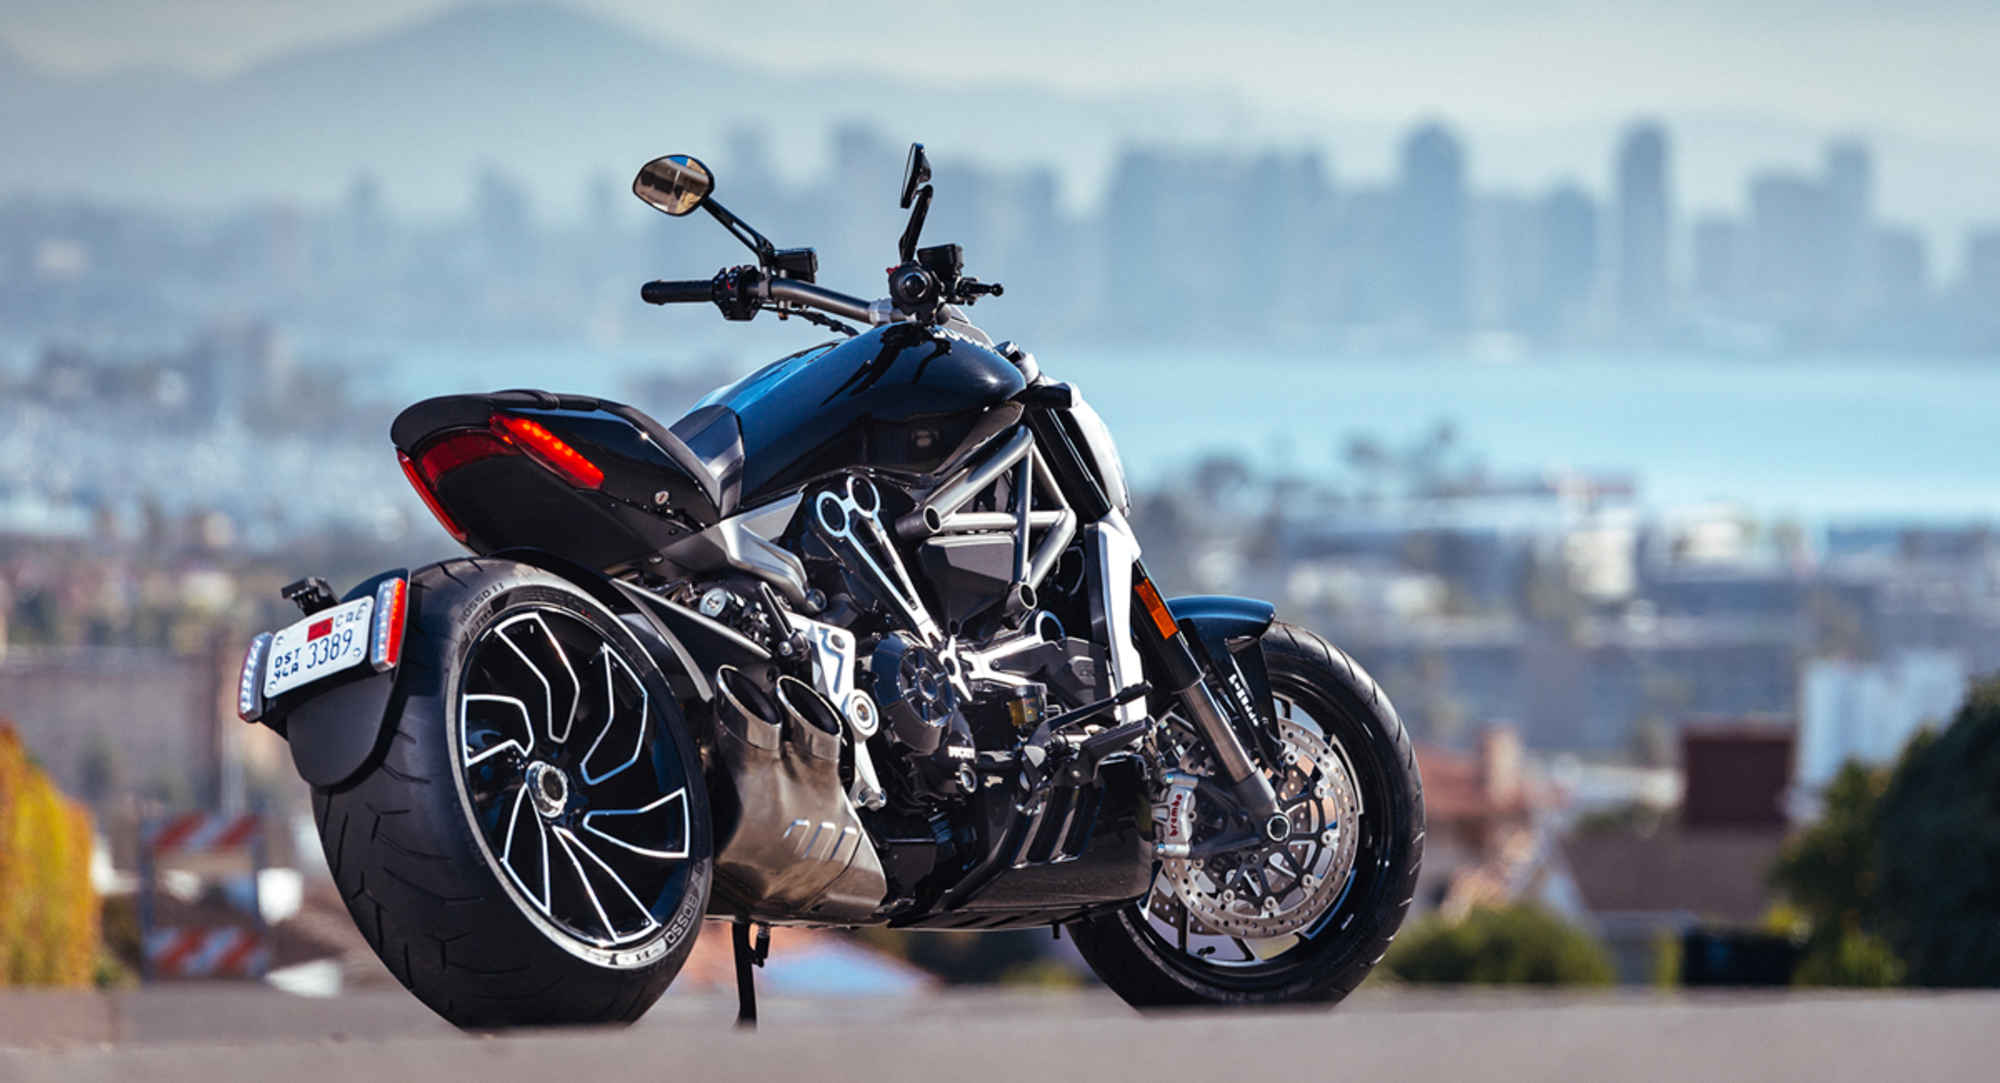 Motrorcycle-Review-2016-Ducati-XDiavel-S-Diavel-cruisers